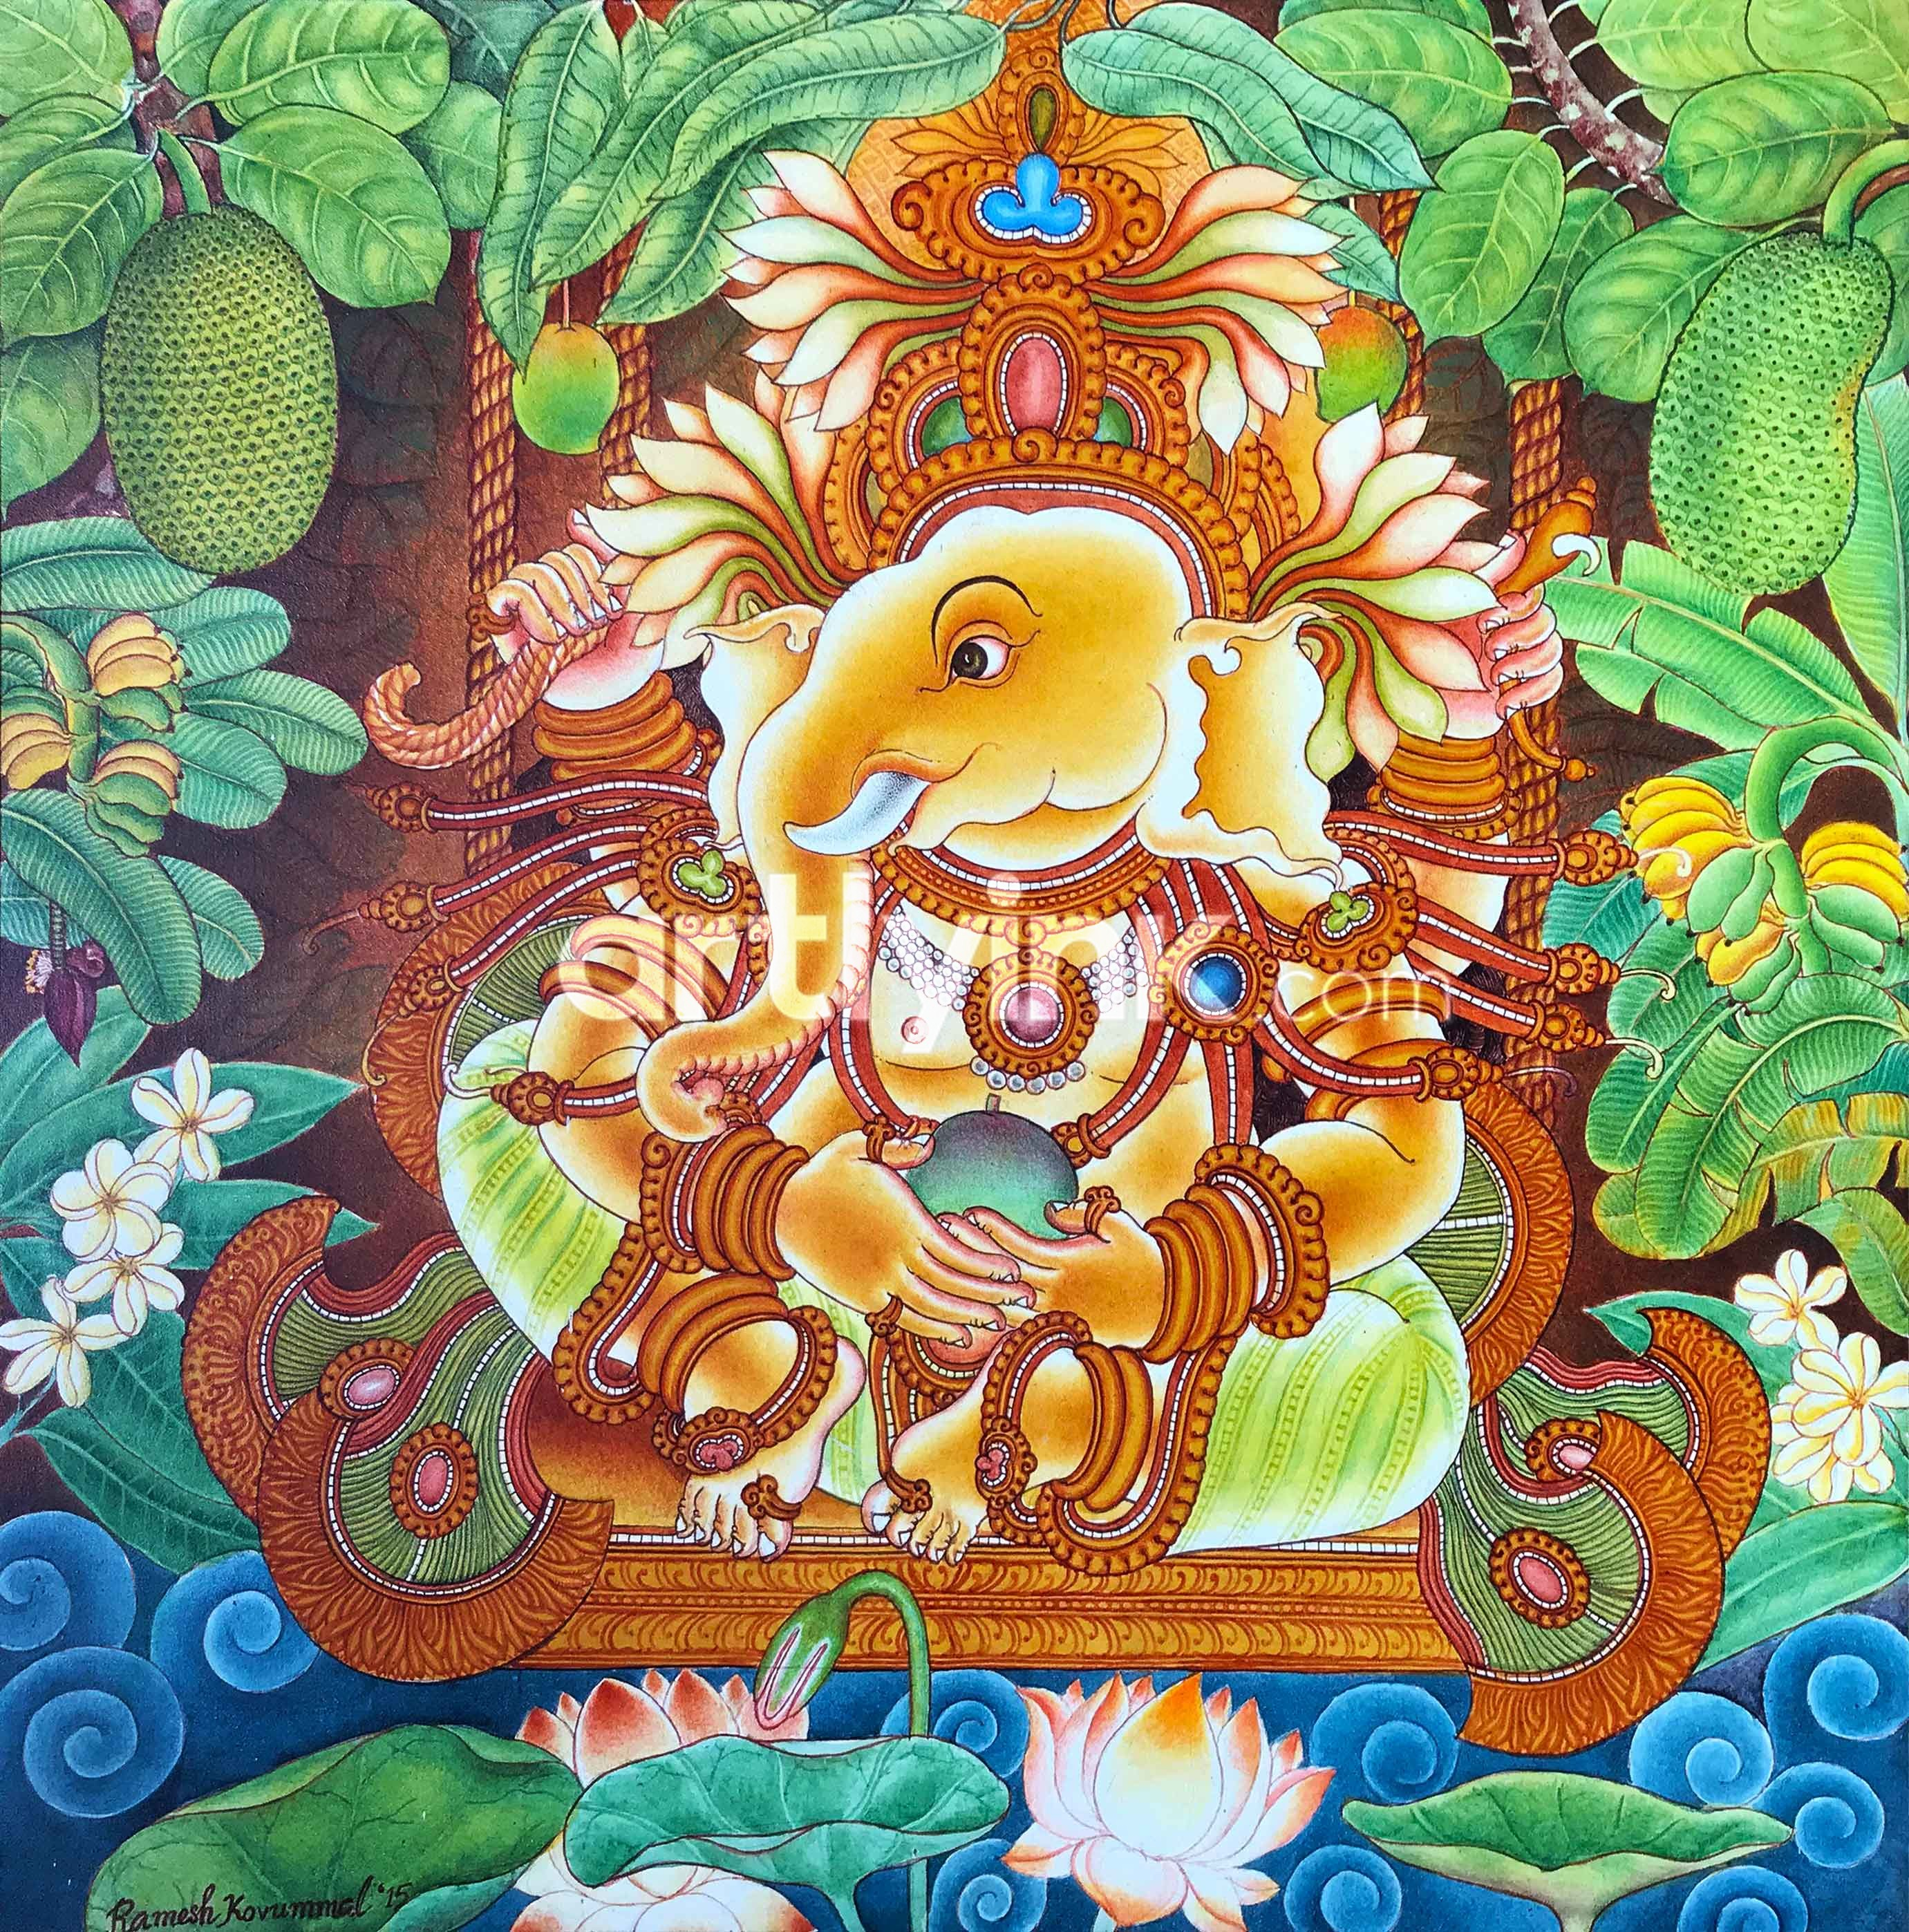 Bhashyasuraksha Ganapathy Mural Paintings